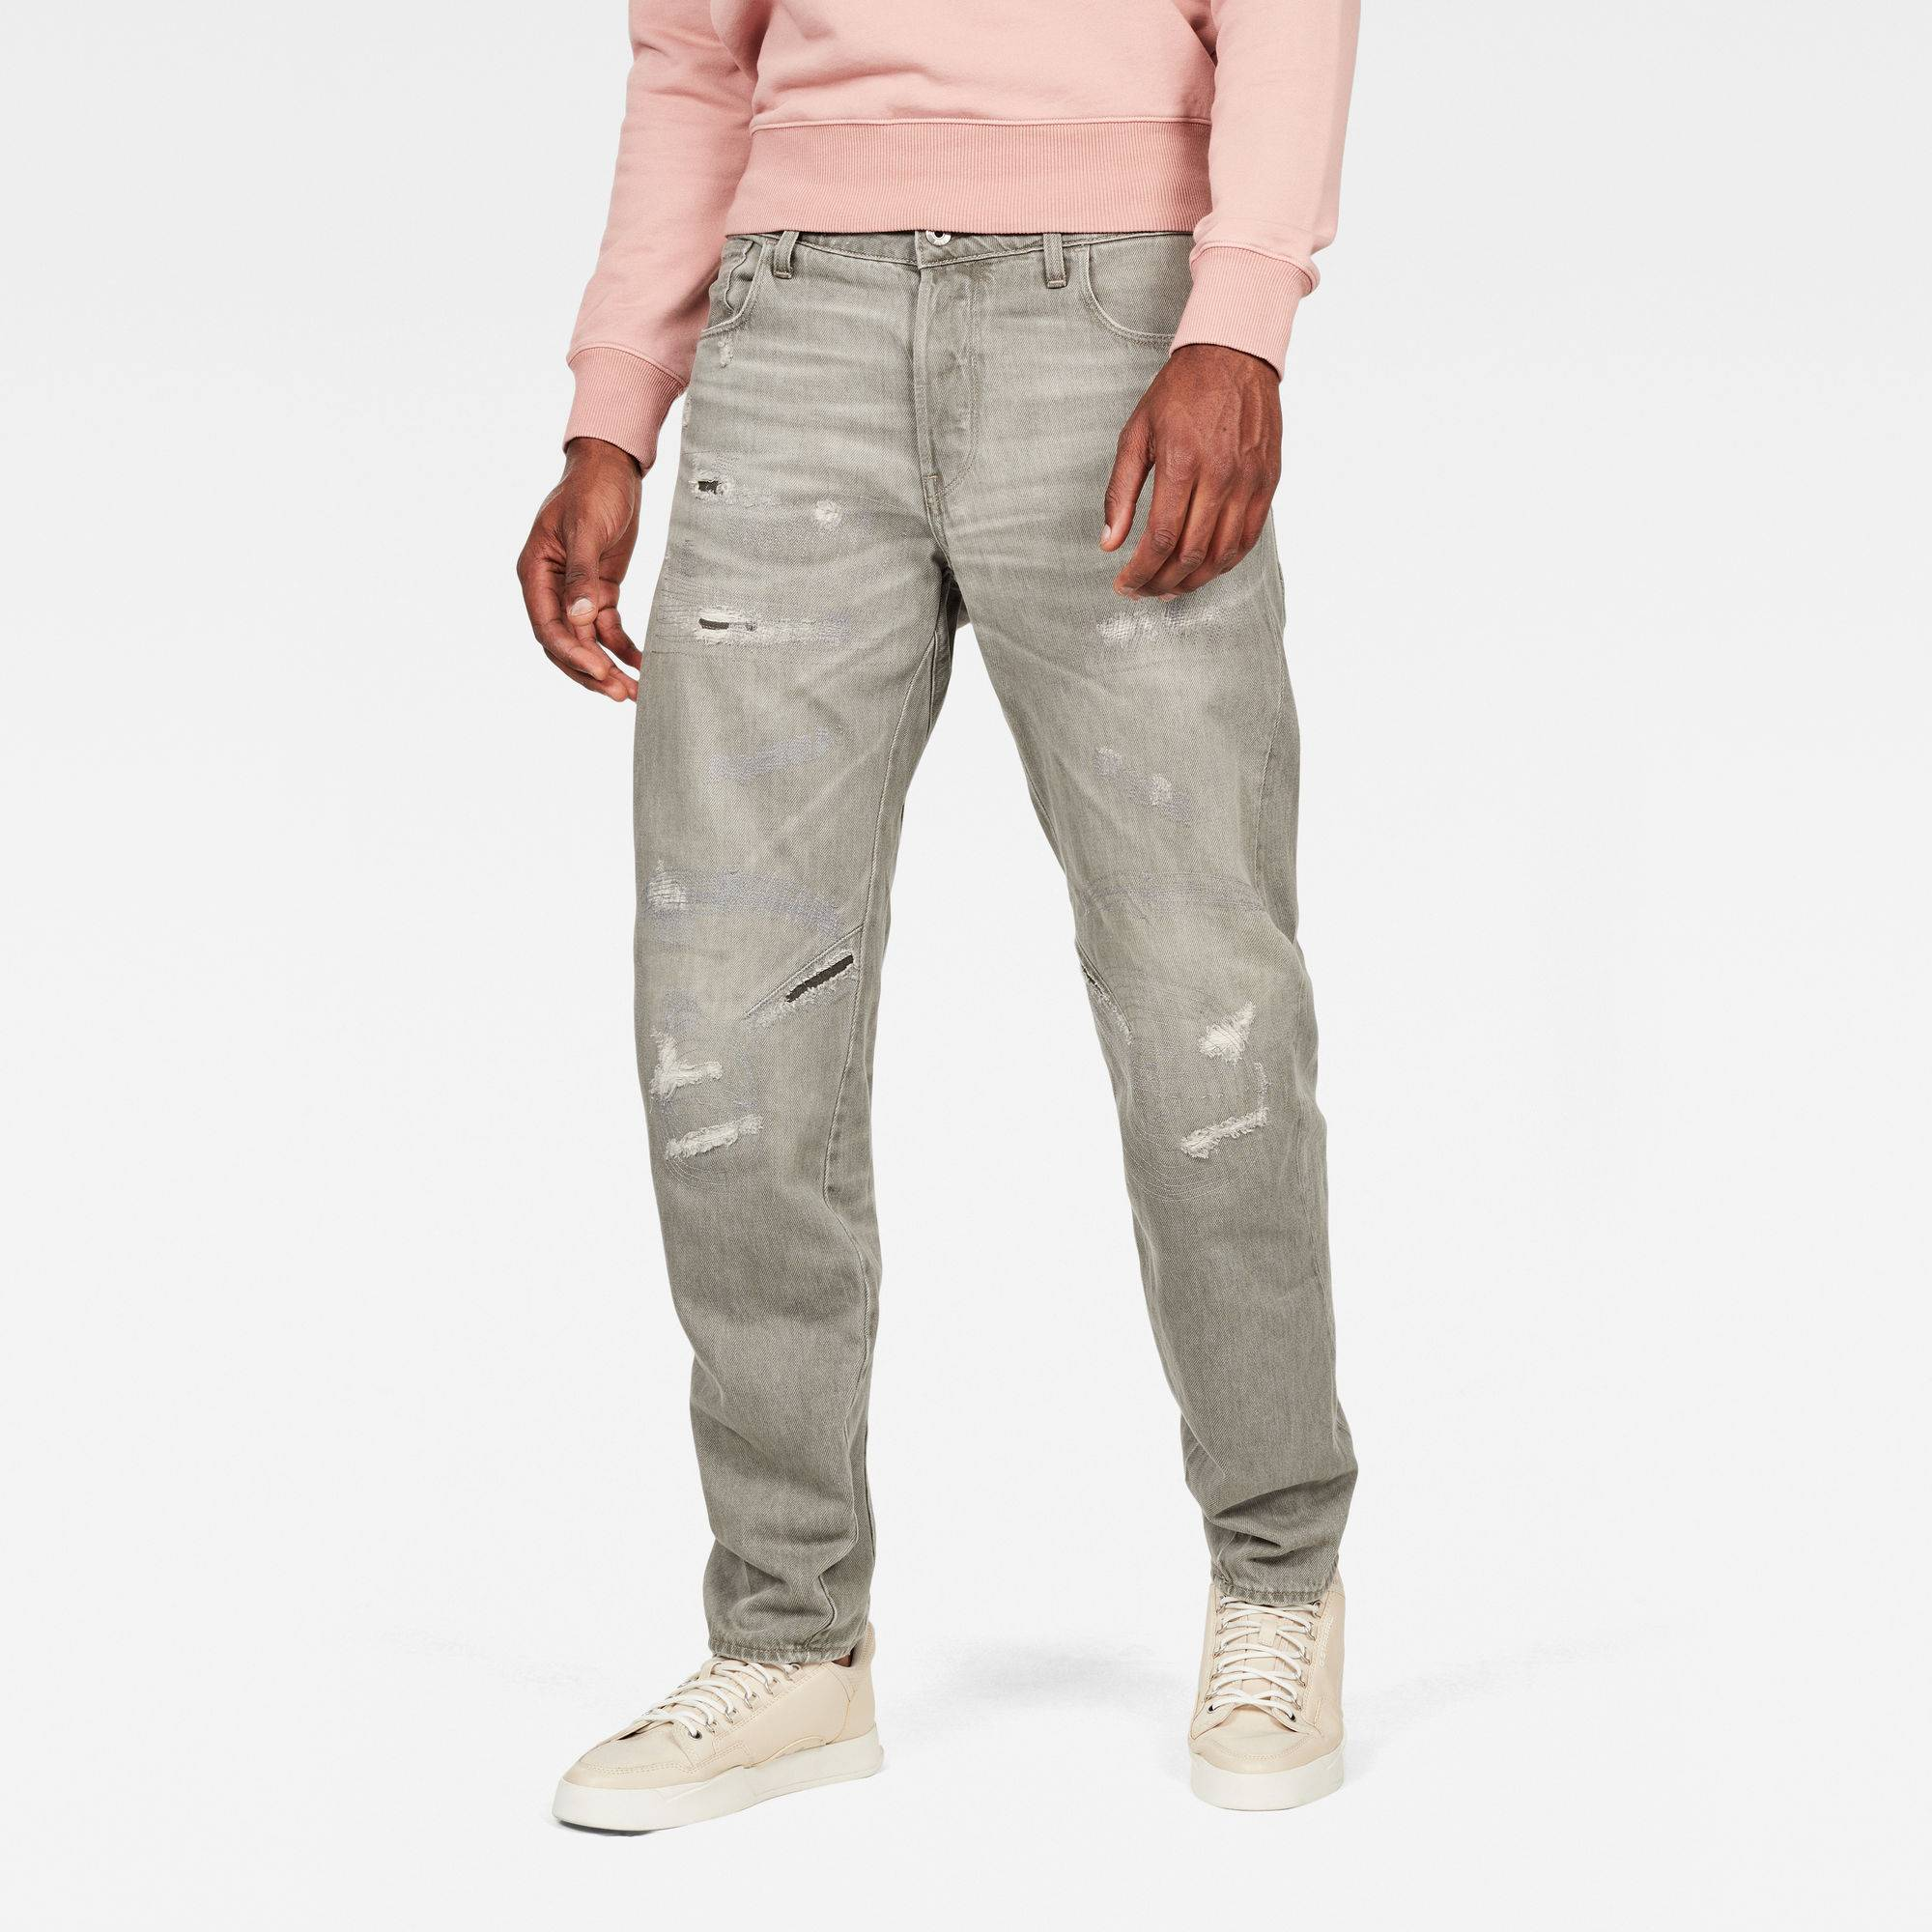 G-star RAW Hommes Jean Arc 3D Relaxed Tapered Earthtrace Colored Gris